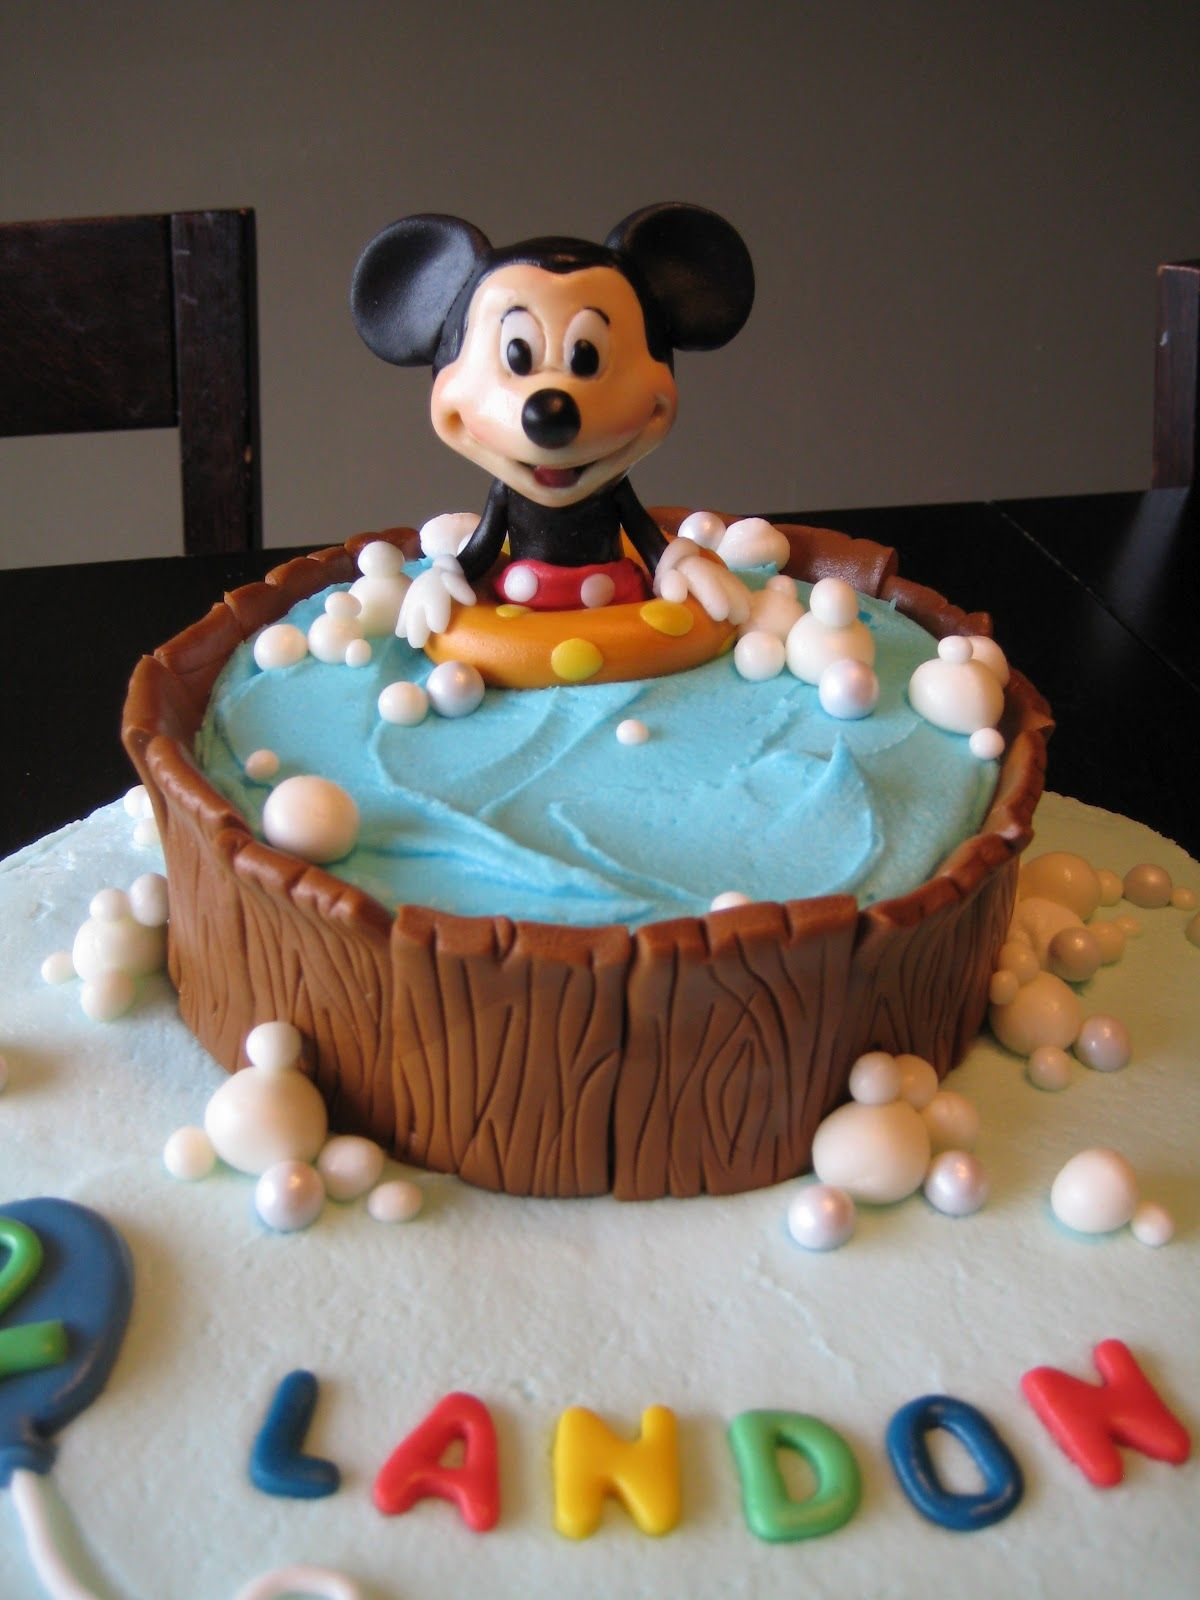 Frozen cake design images  Bubbles Made Of Fondant  Cake Ideas iud like to try uc  Pinterest